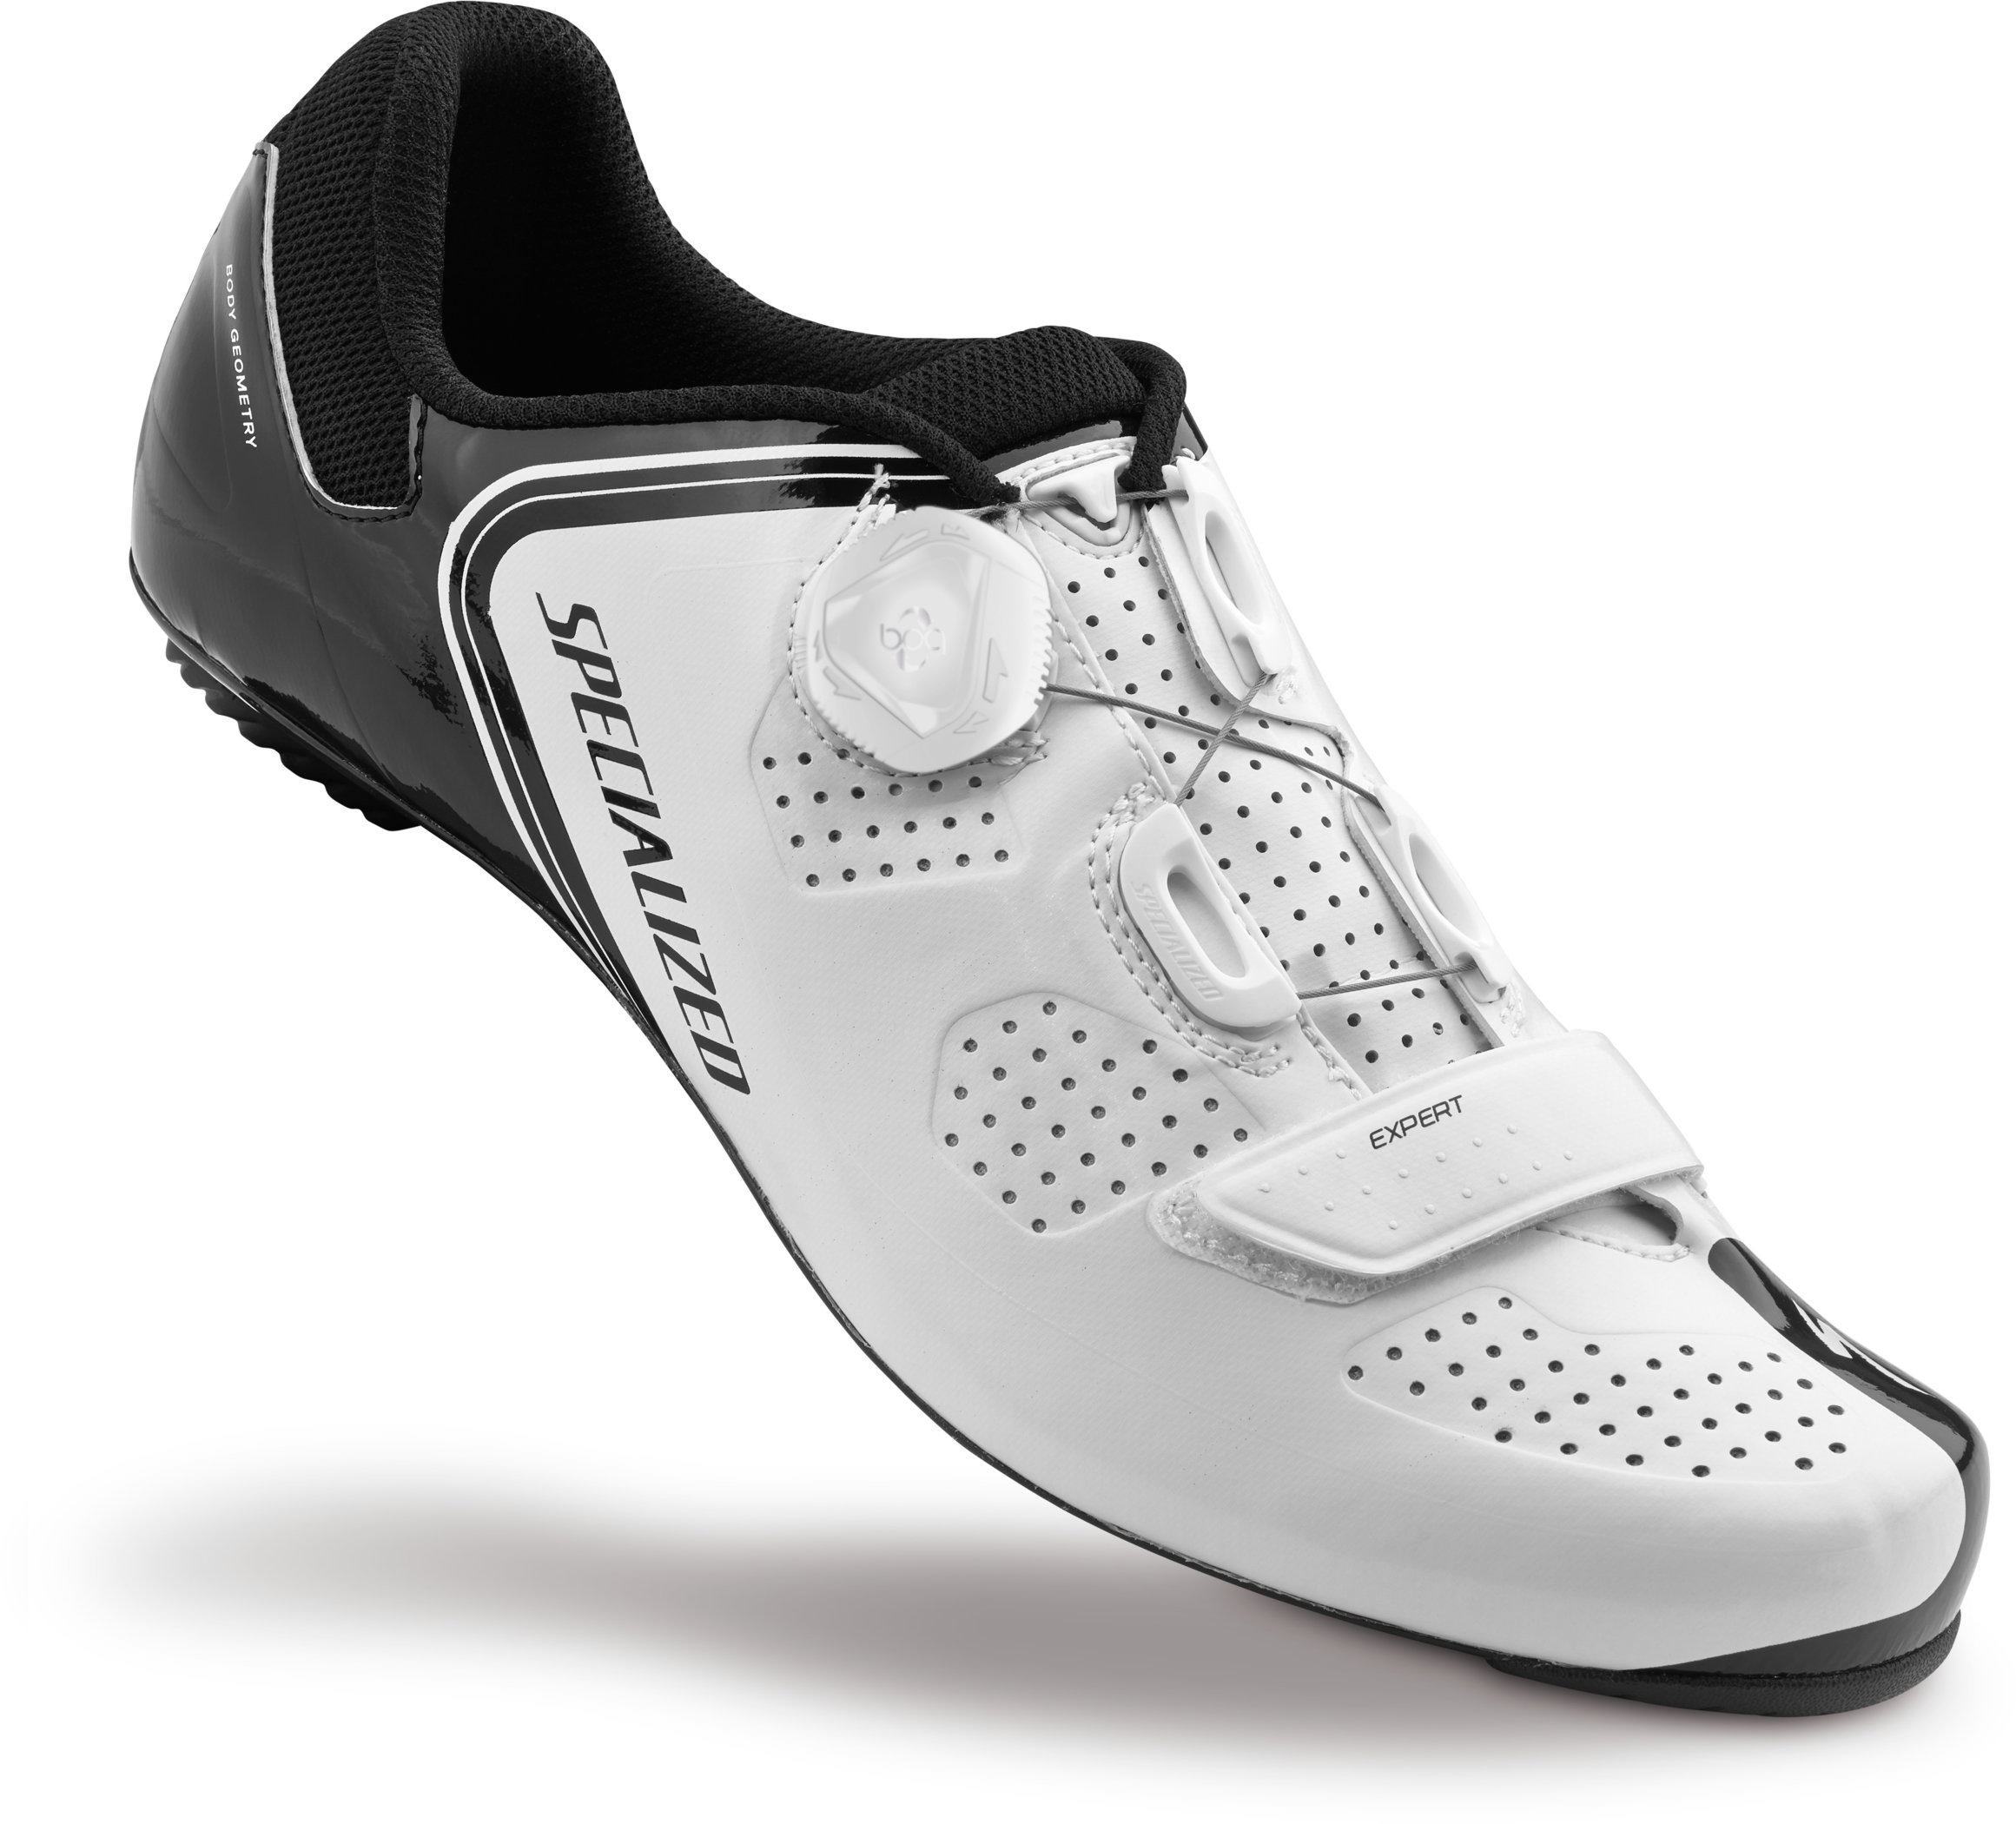 SPECIALIZED EXPERT RD SHOE WHT/BLK 48/13.75 - Bikedreams & Dustbikes